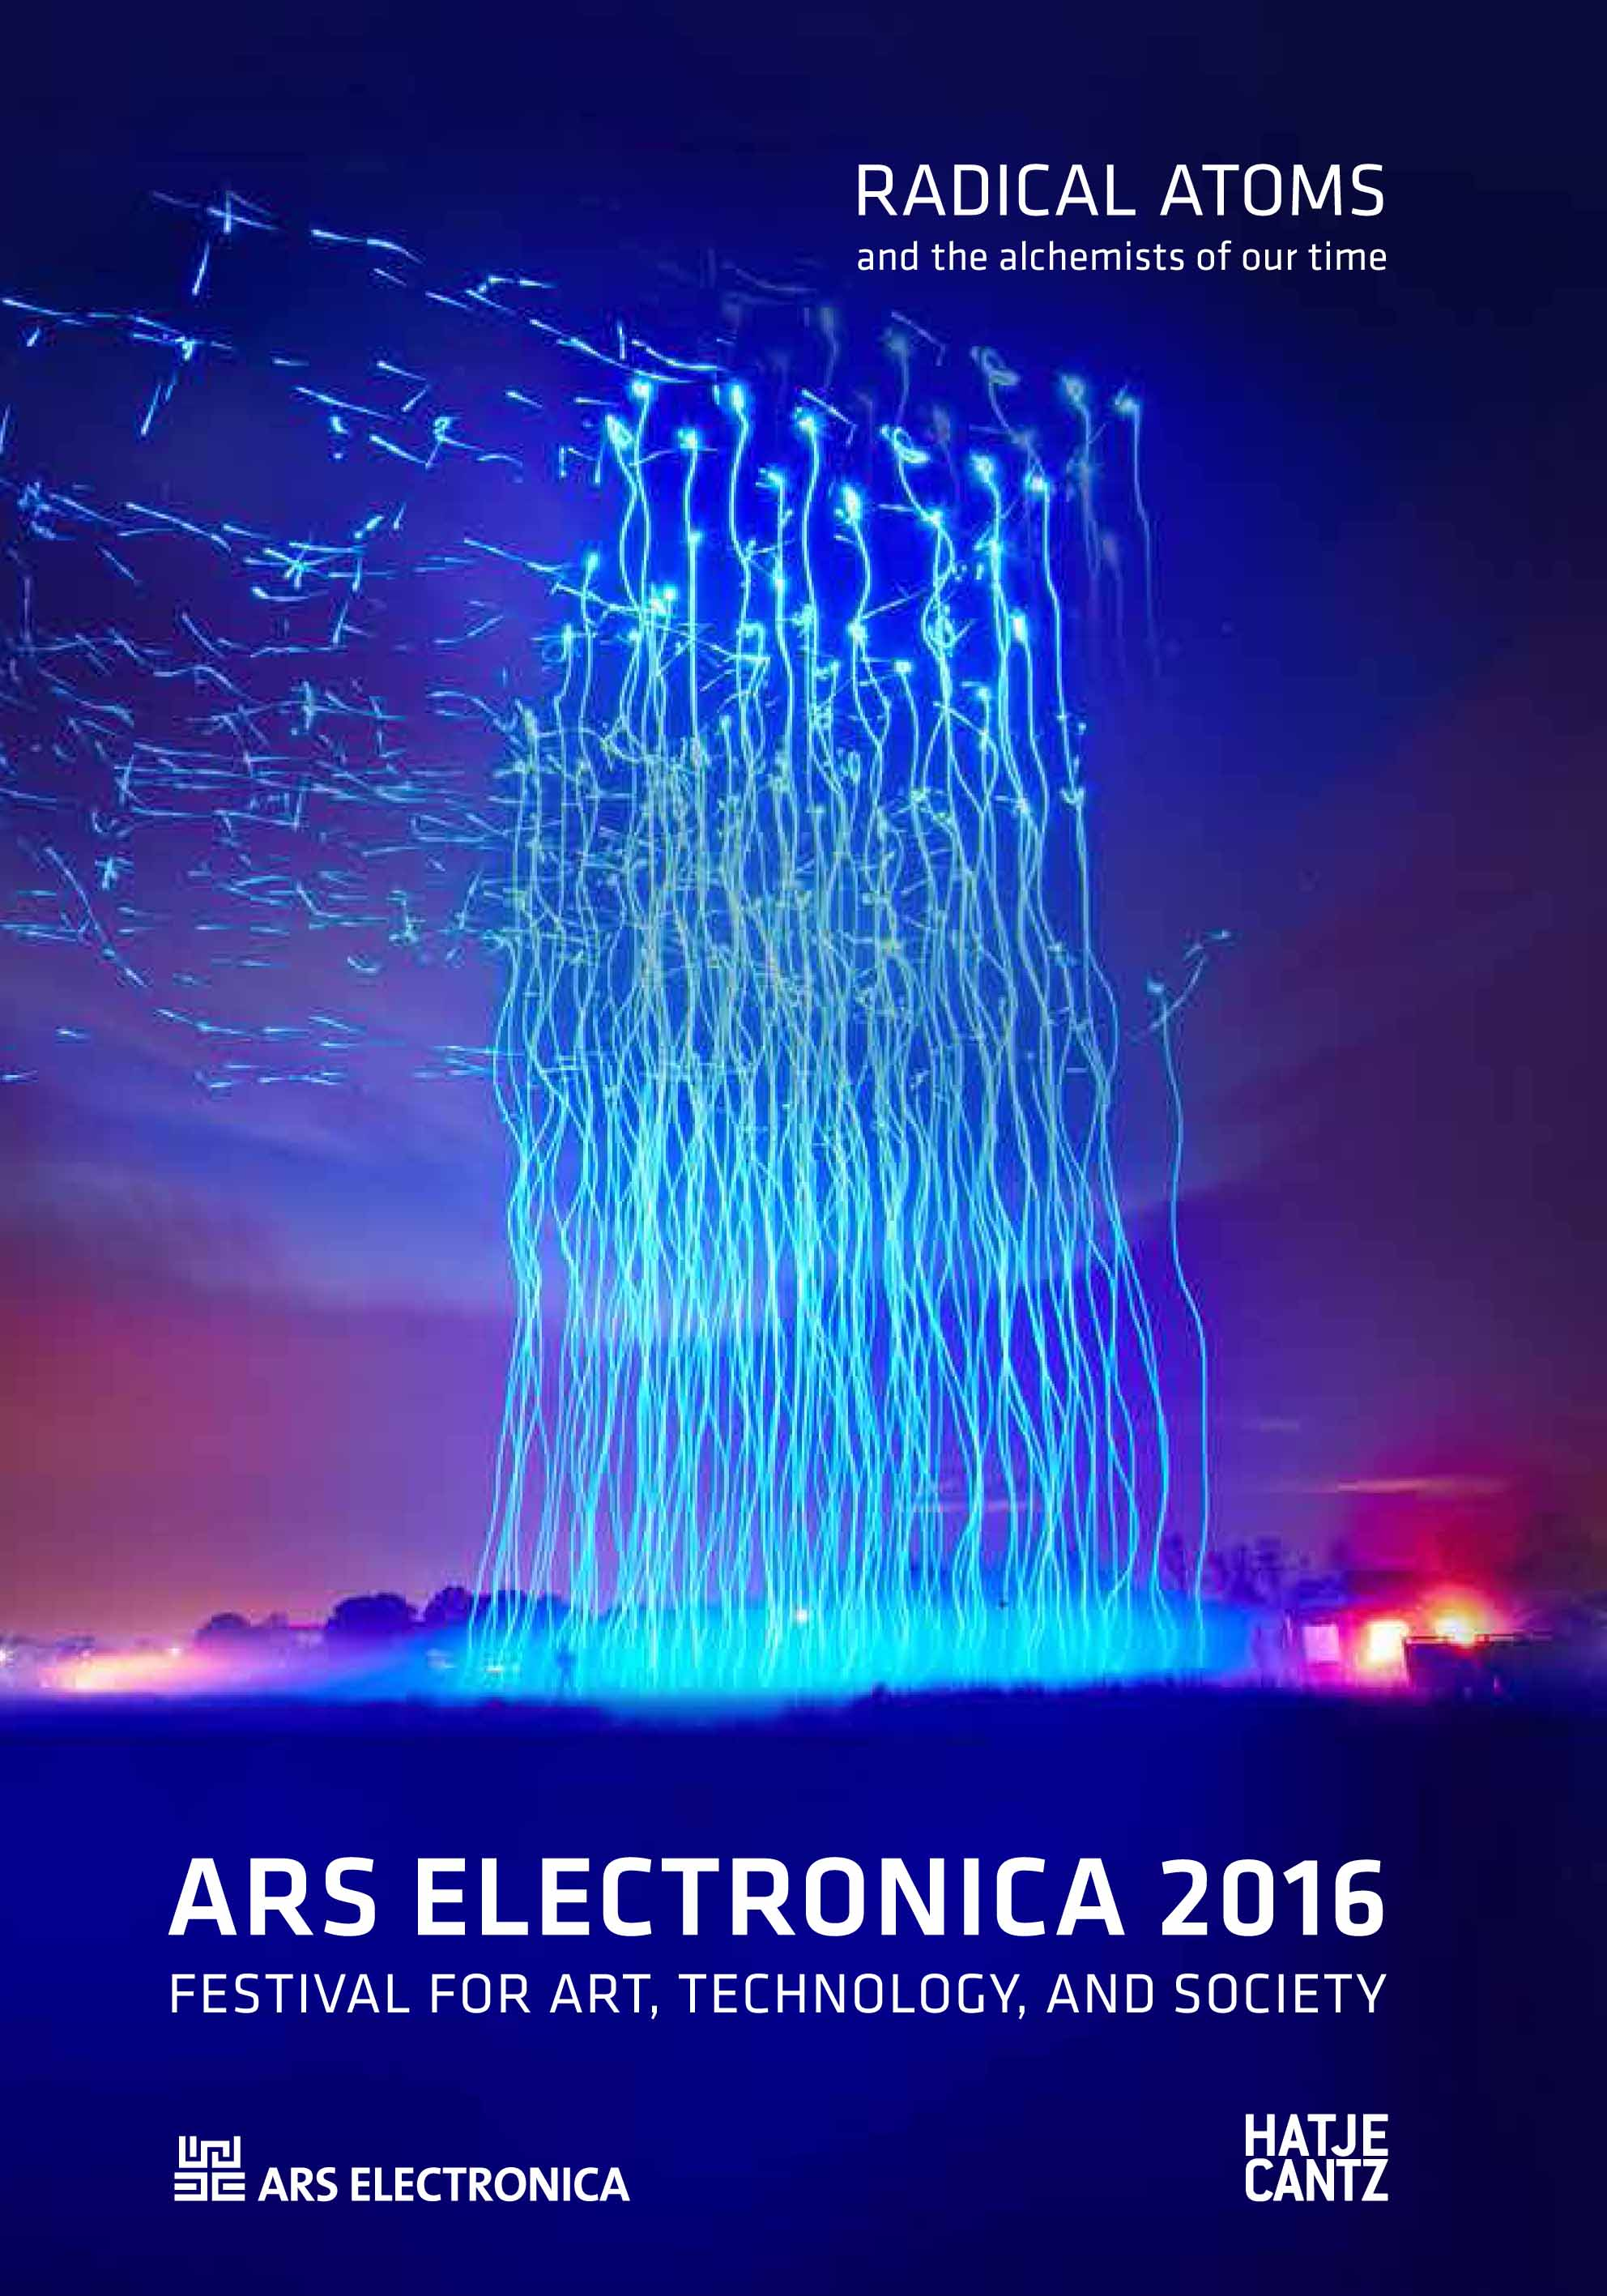 ars electronica archiv